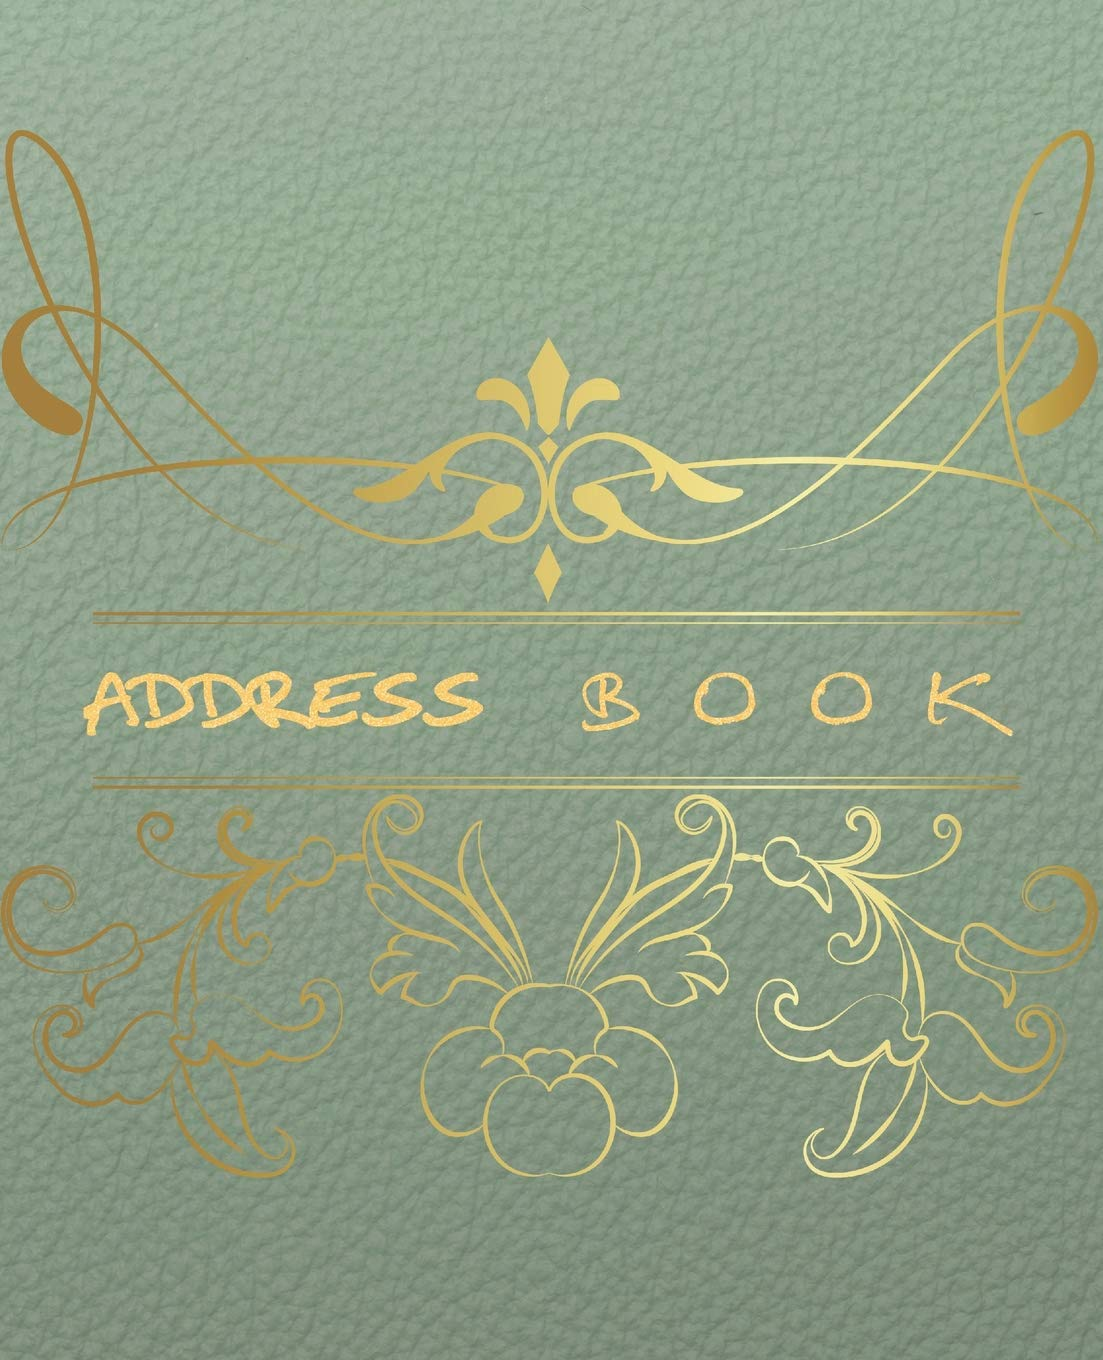 Address Book: Floral Cover address book for names, addresses, phone numbers, emails and birthdays Alphabetical Organizer Journal Notebook - 7.5X9.25 ... in Alphabetical Organizer Journal Series